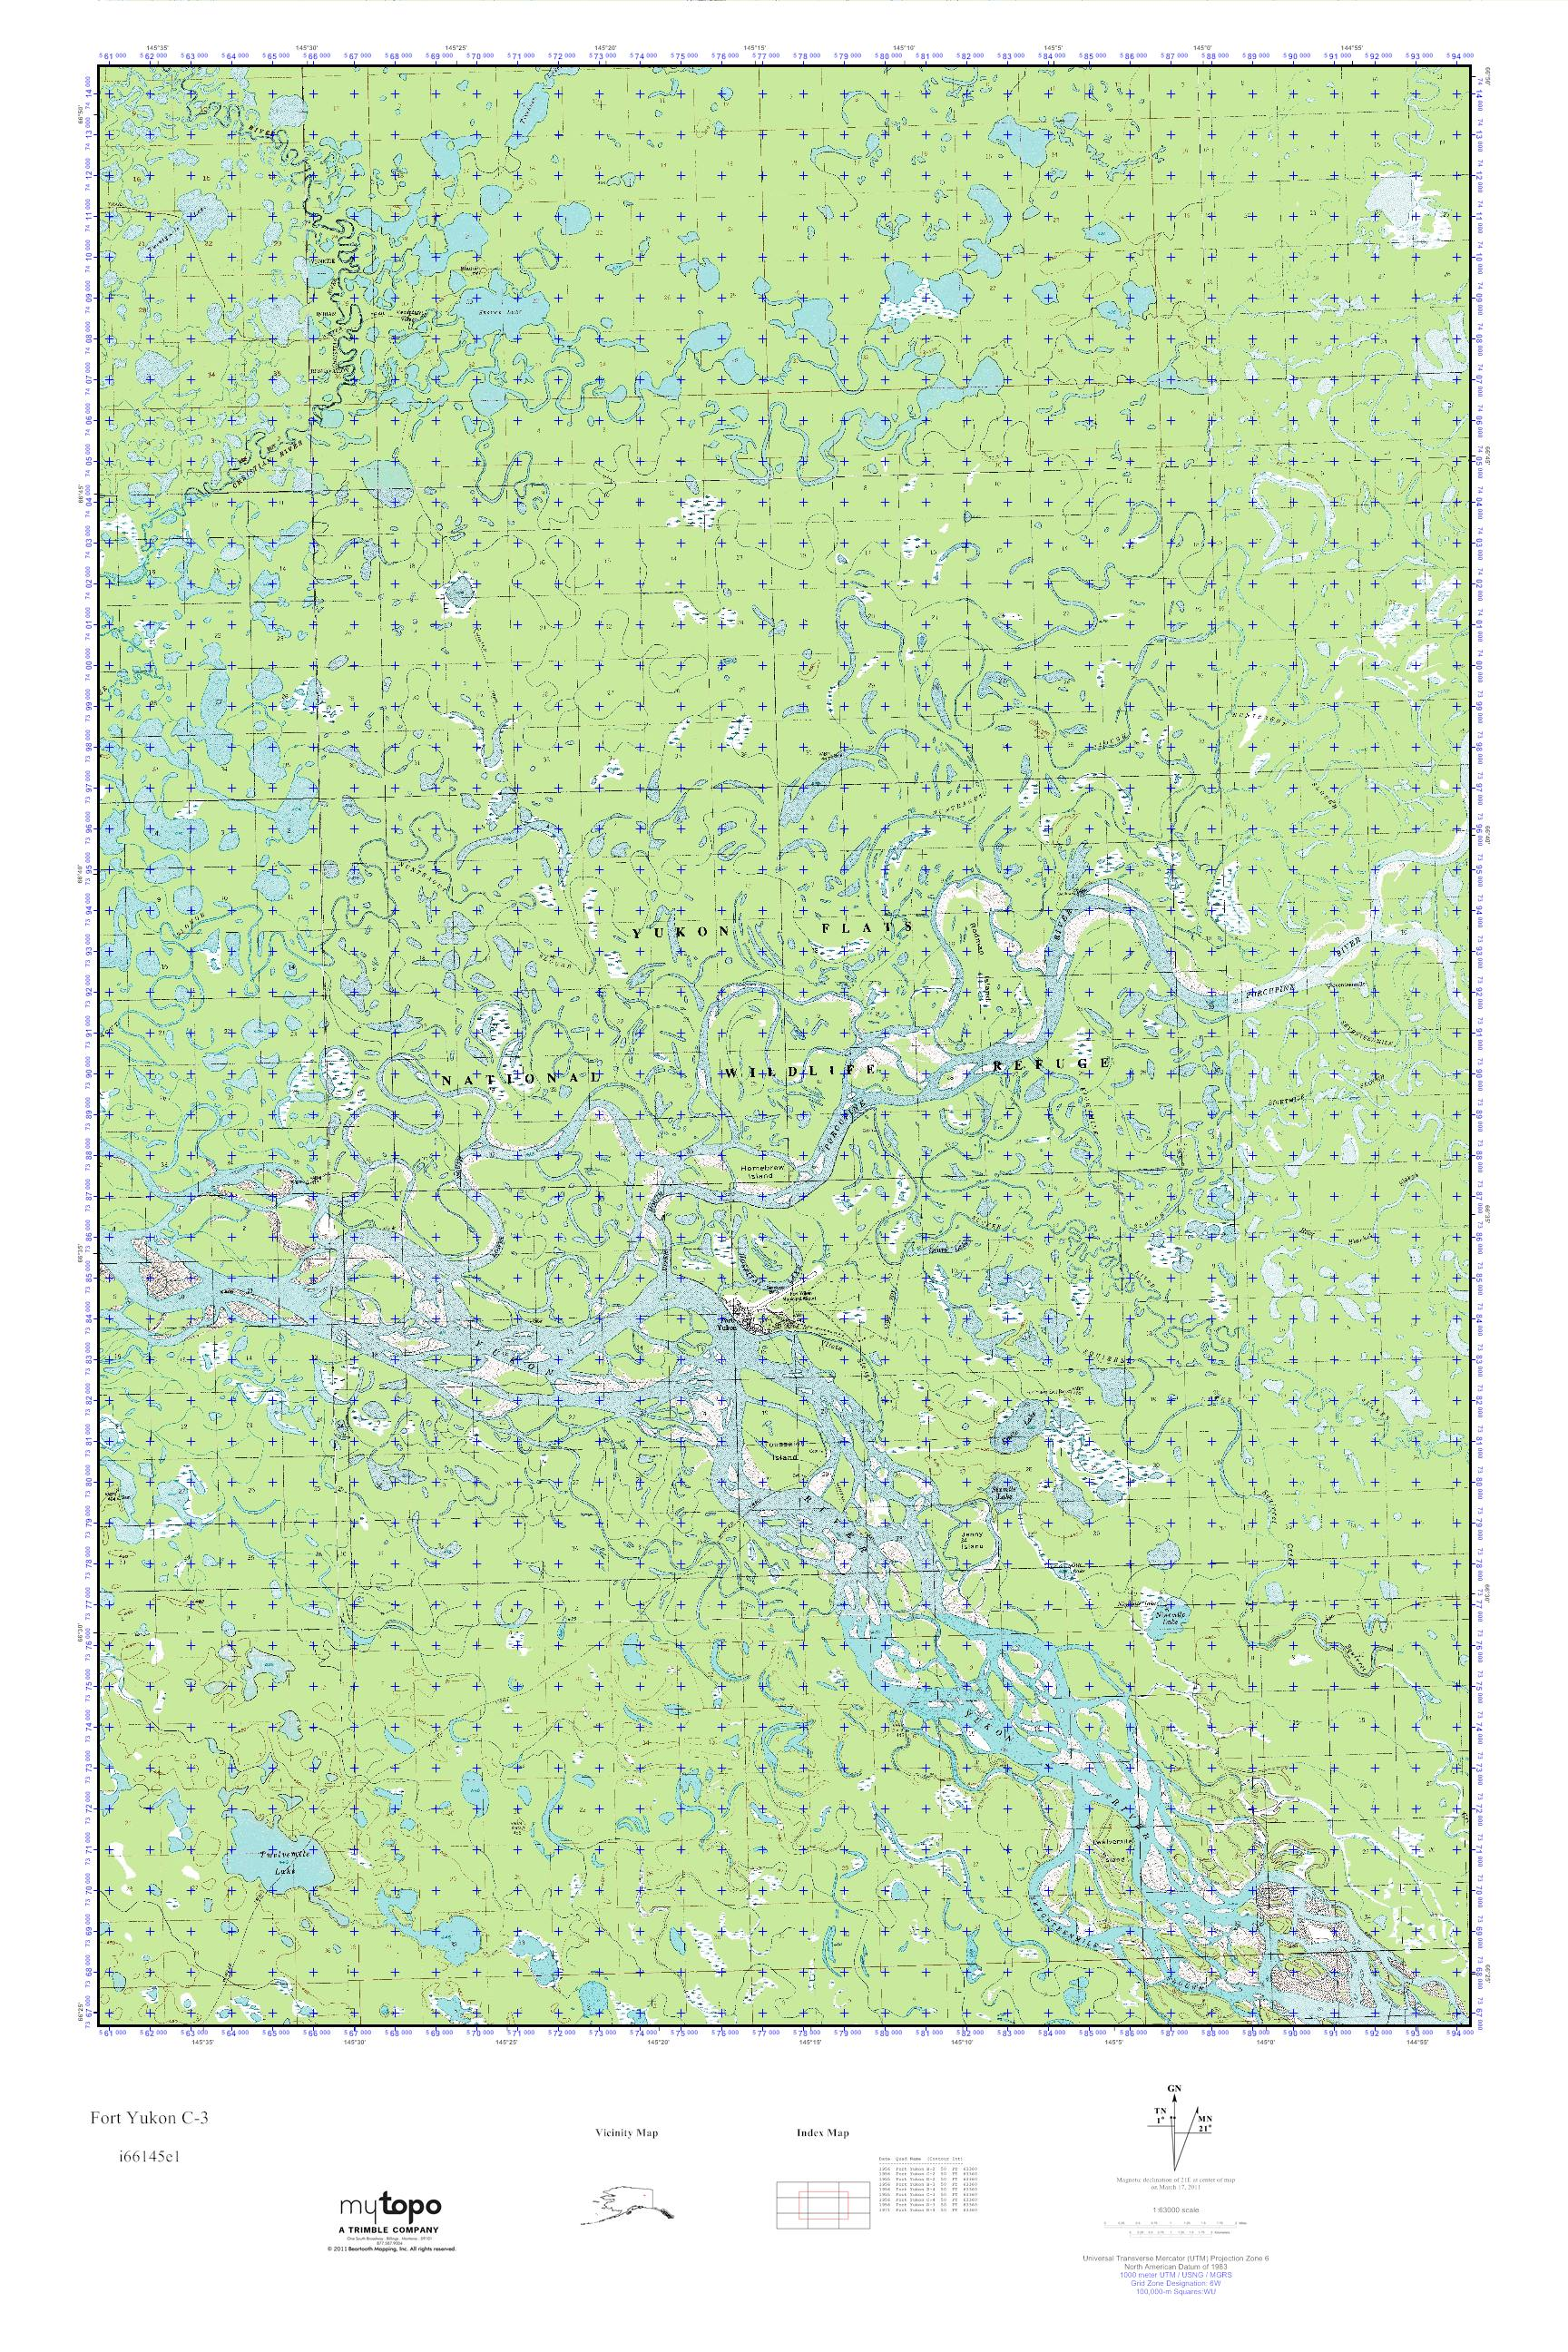 Fort Yukon Alaska Map.Mytopo Fort Yukon C 3 Alaska Usgs Quad Topo Map